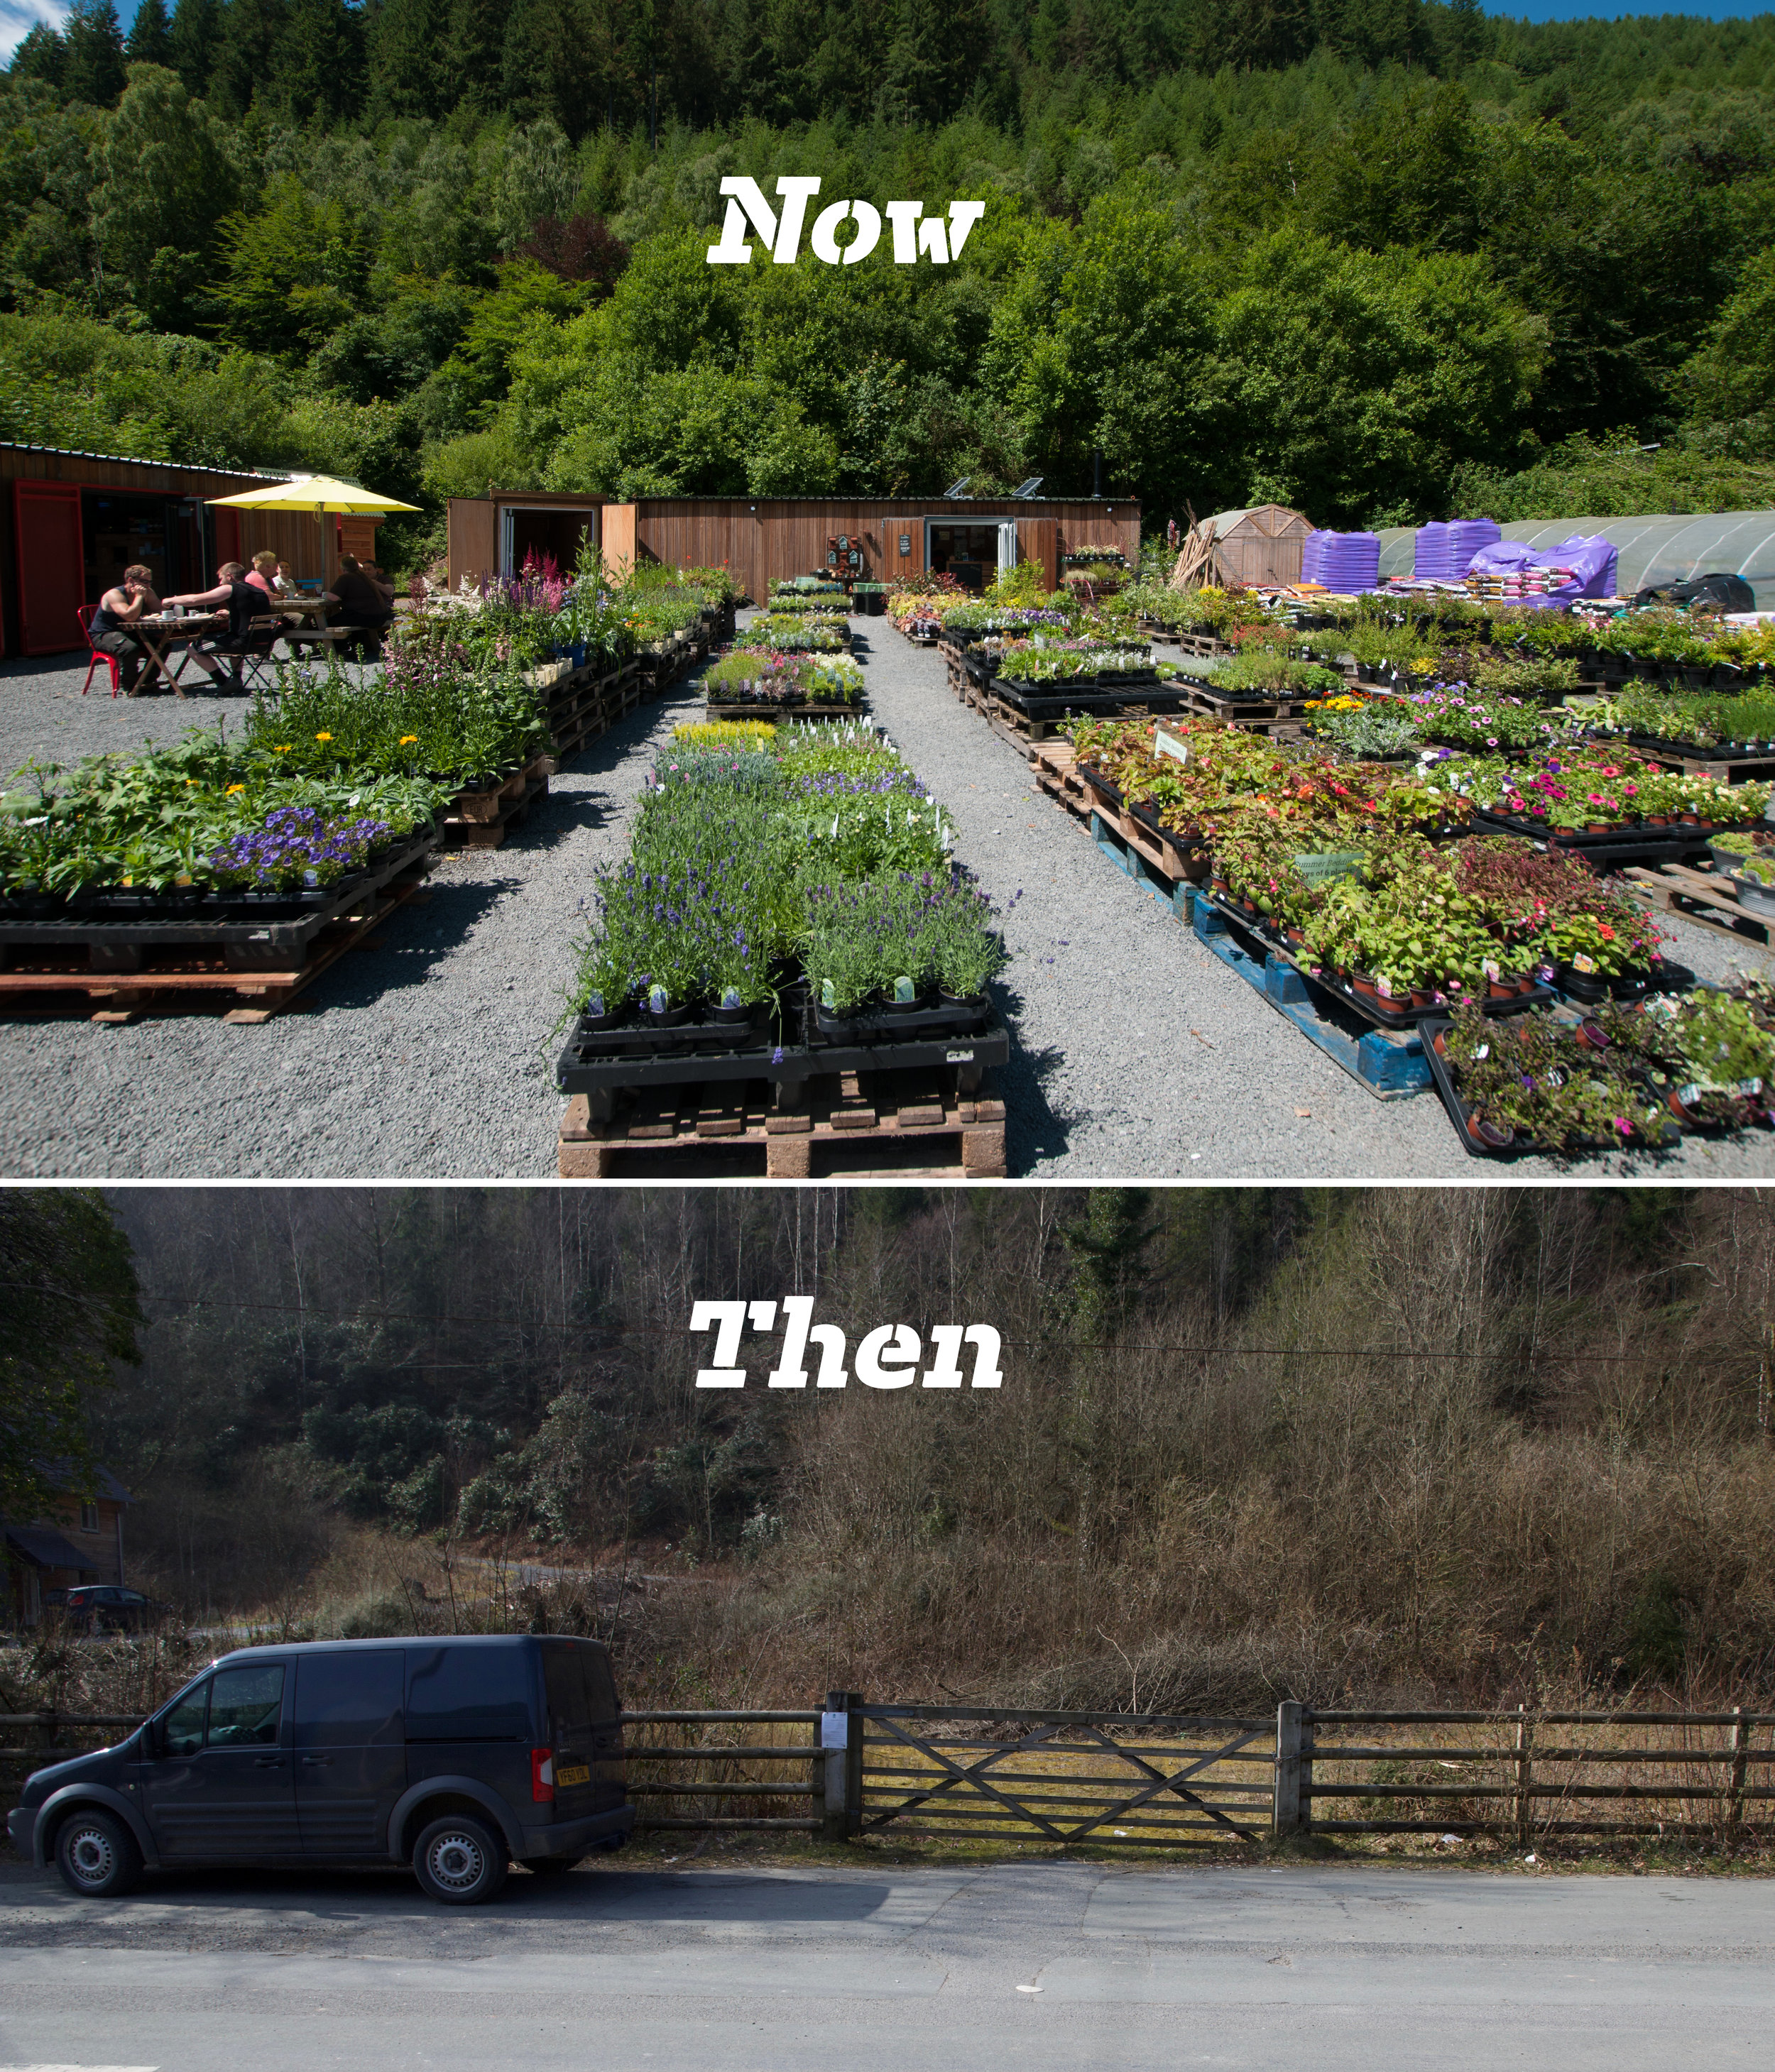 Our story so far … - Camlan Garden Centre opened in the summer of 2016; and the Farm Shop opened in the summer of 2018.Lisa and Ian Allsop grasped the opportunity to transform an unused plot of land just off the A470 in Dinas Mawddwy into a much-needed local garden centre and farm shop. The farm shop uses both main electric and solar power to provide lighting; as well as power for a water pump for use with rainwater from large storage tanks for irrigation. The shops are converted shipping containers, clad in larch to blend in with the surrounding landscape.The new farm shop is run by Ian Allsop, who has retired from gardening to indulge his love of cheese! The shop stocks a wide choice of Welsh and British cheeses, fresh locally produced bread as well as lots of tasty Welsh produce from companies including Halen Mon, Pembrokeshire Beachfood Company, and Wickedly Welsh Chocolate. More recently the farm shop has been able to stock locally farmed pork from Neuadd Fach Baconry and Cig Oen Mawddwy lamb.The garden centre, run by Lisa Allsop, stocks Welsh and British grown plants such as Welsh variety fruit trees and hardy shrubs, alpines and perennials, all well suited to the climate in this part of Wales; along with a selection of more traditional plants such as summer bedding plants.There is a separately owned cafe on-site.